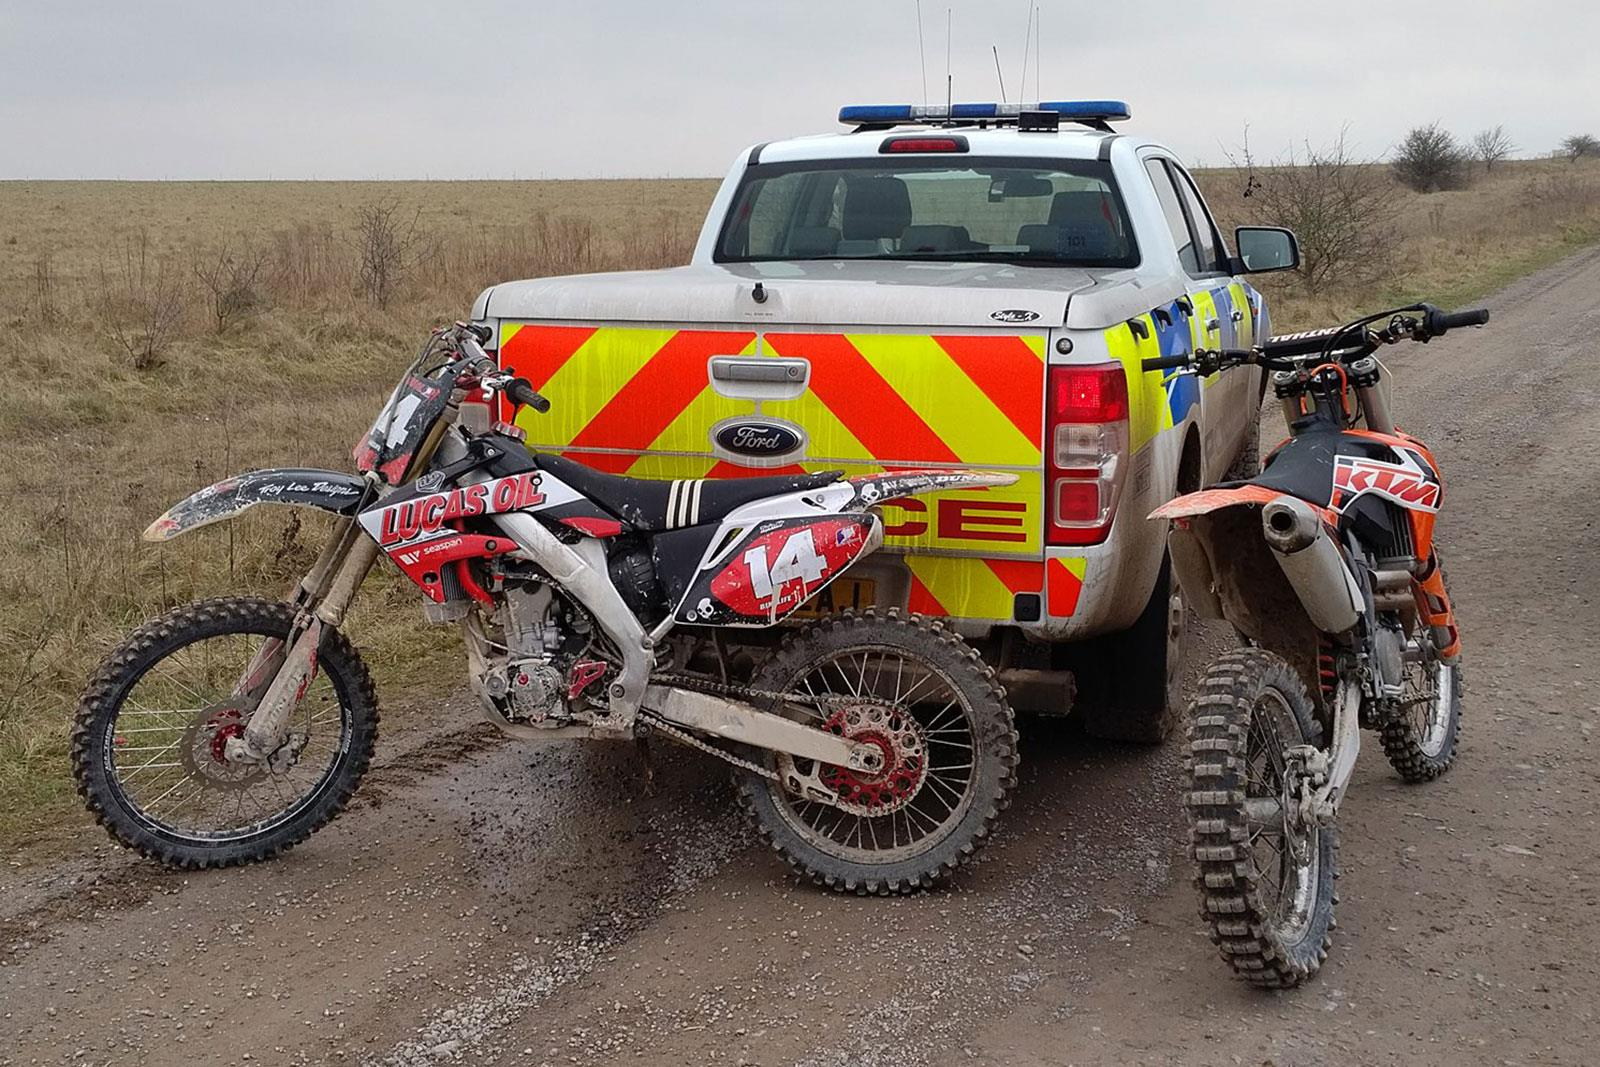 Police Clamp Down On Illegal Off Road Riding